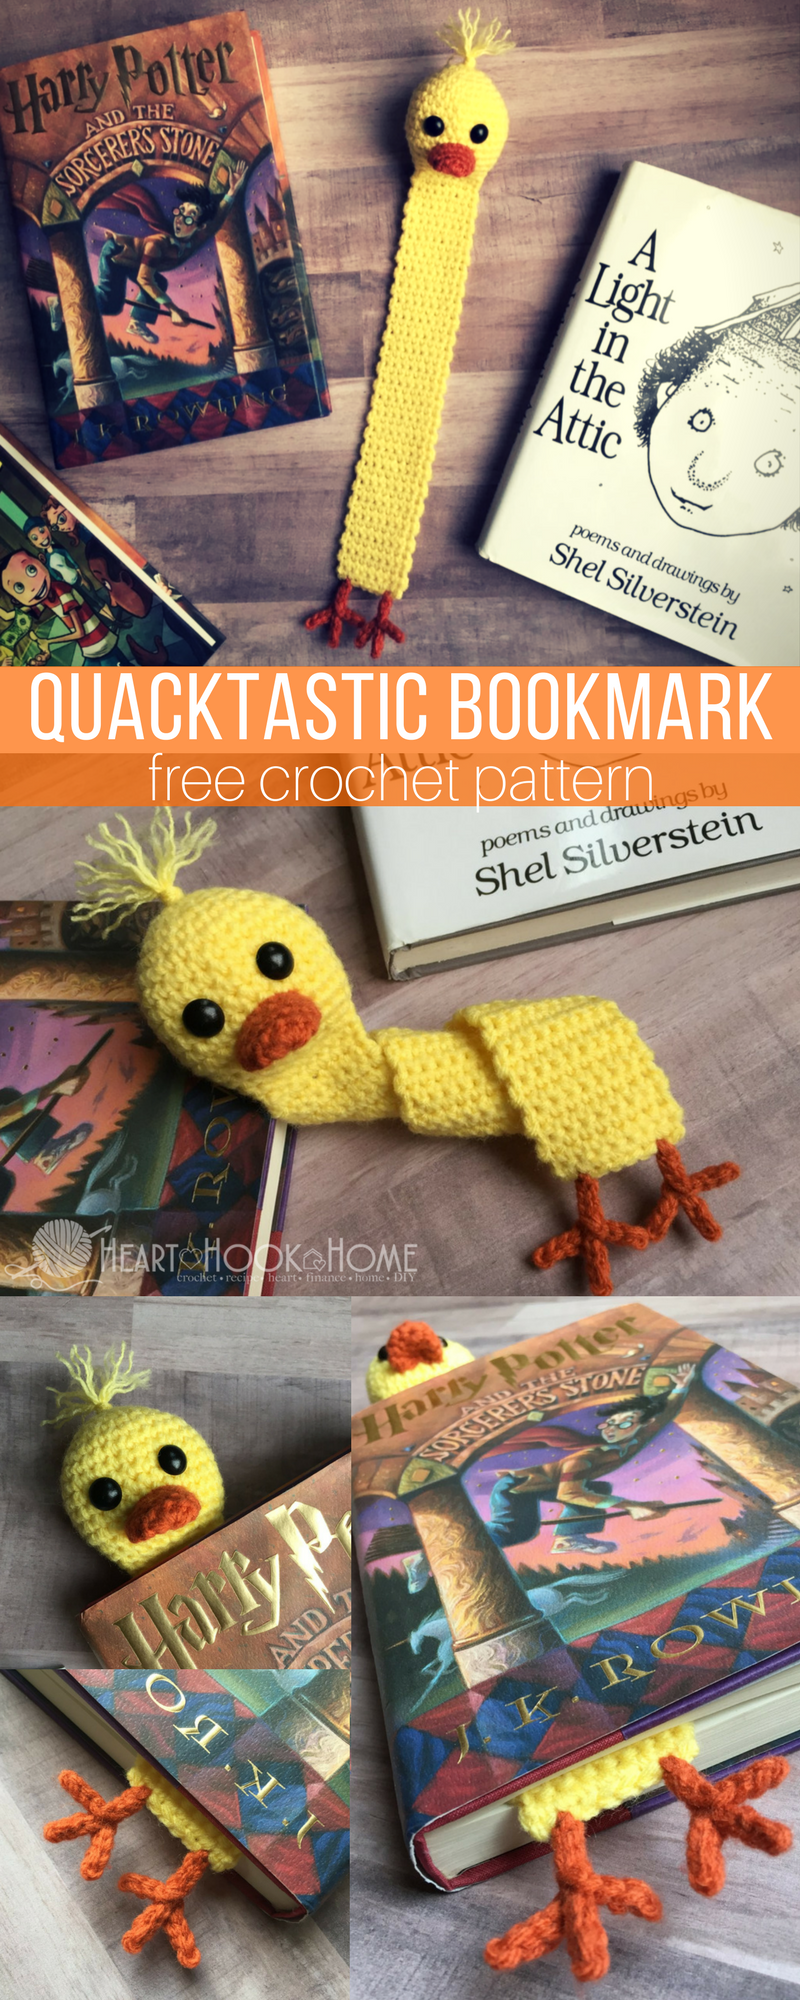 Libros De Ganchillo Quacktastic Duck Bookmark Free Crochet Pattern Patrón Libre